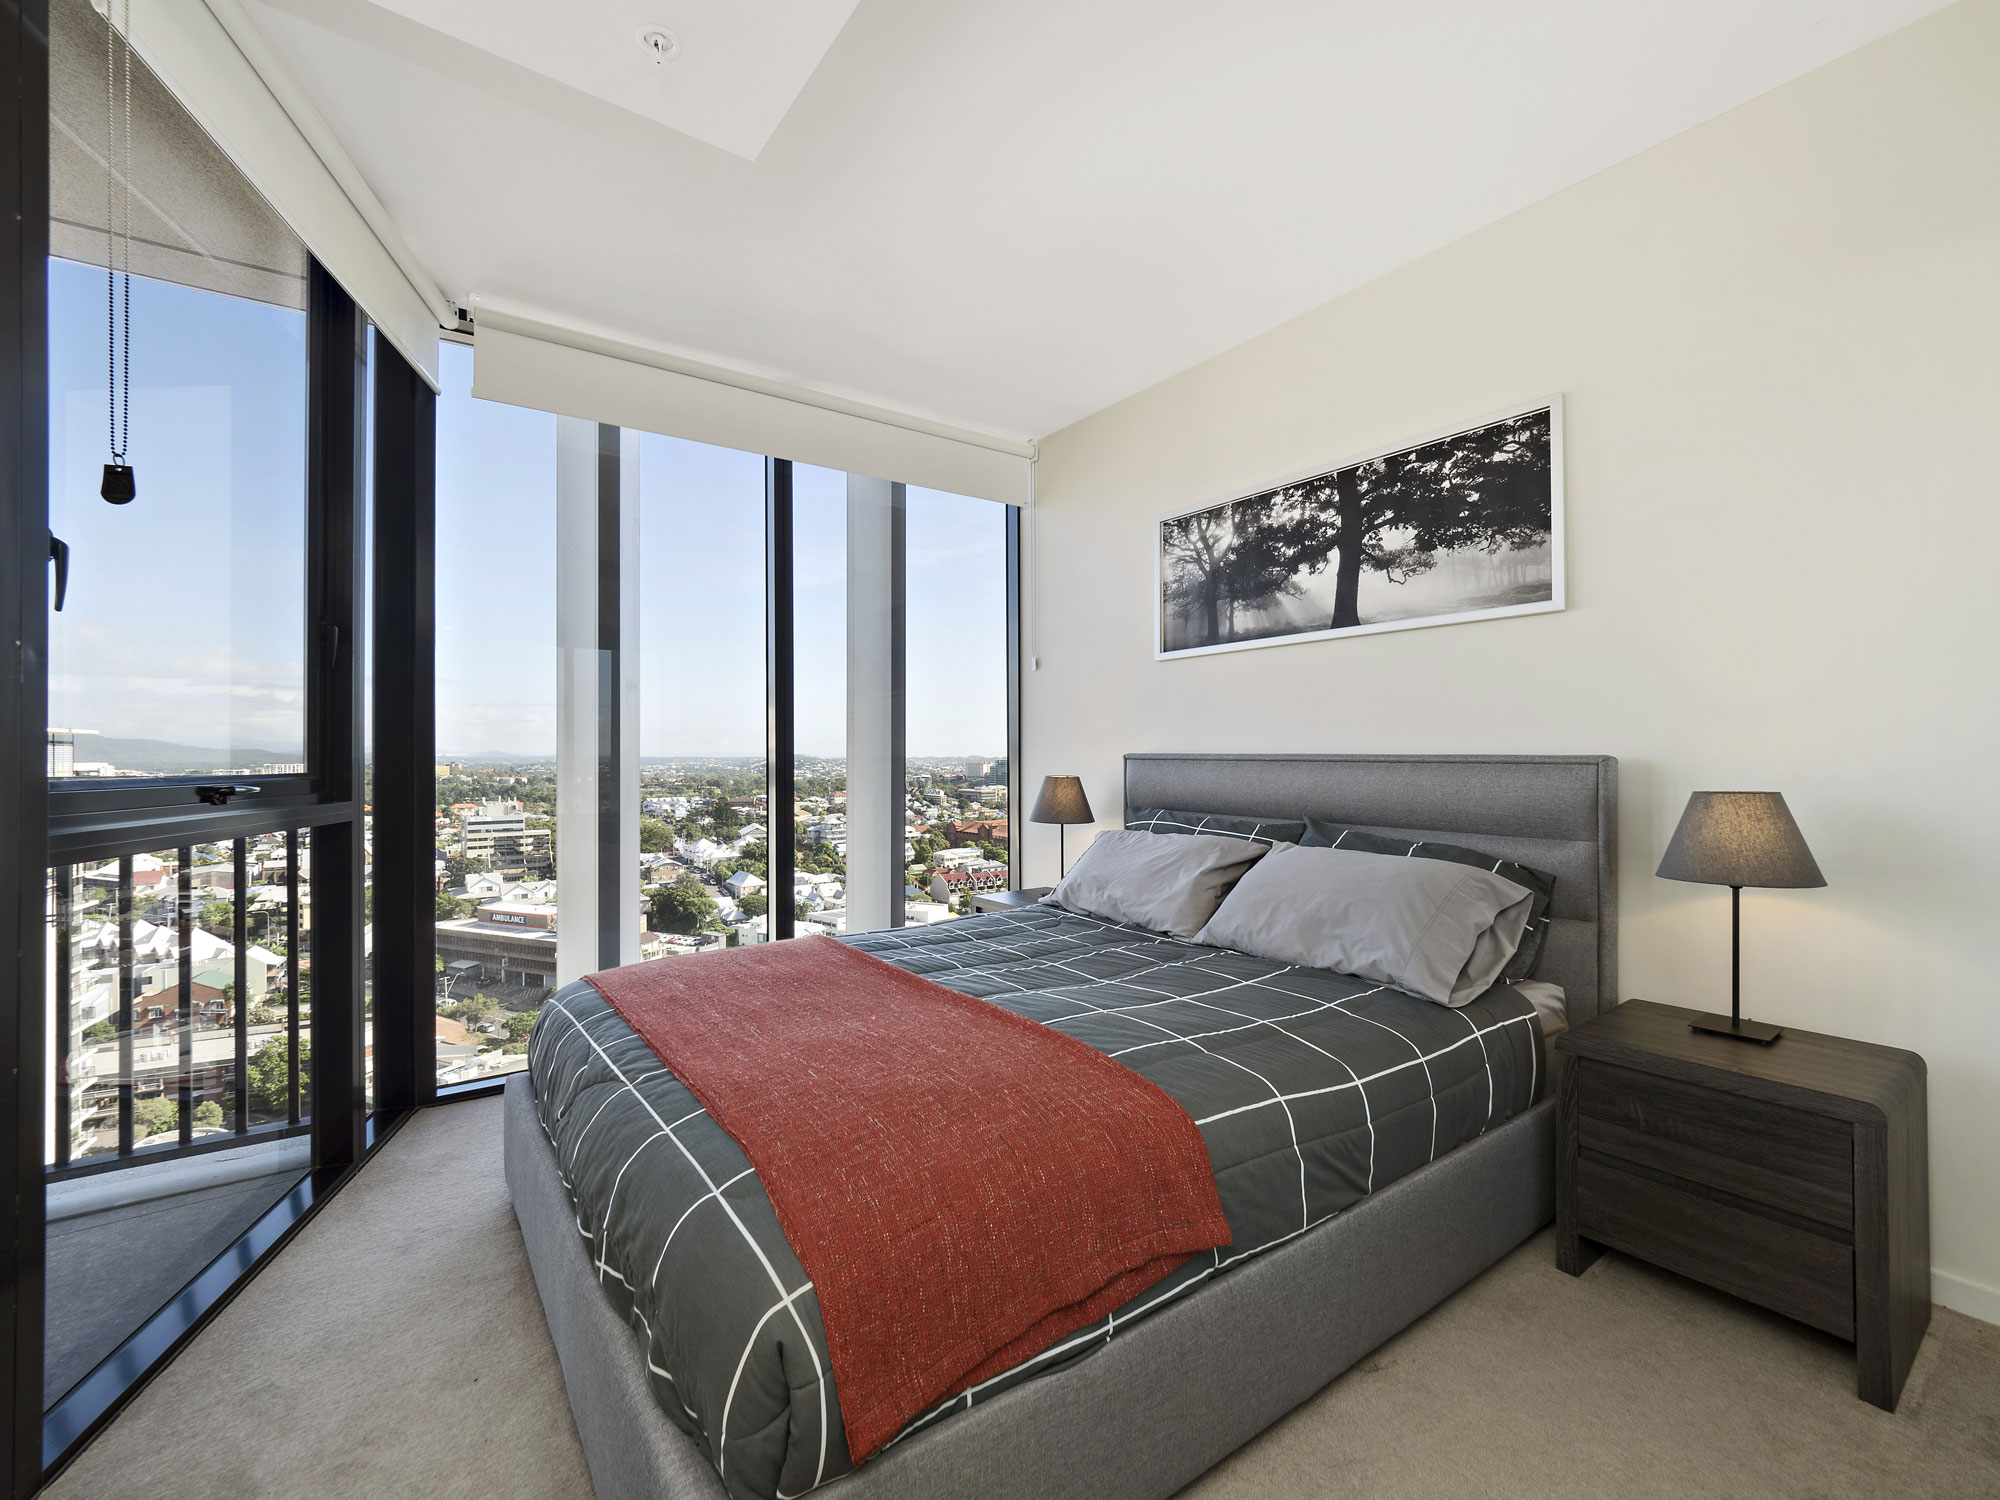 Apartment photography in Redcliffe by Phil Savory